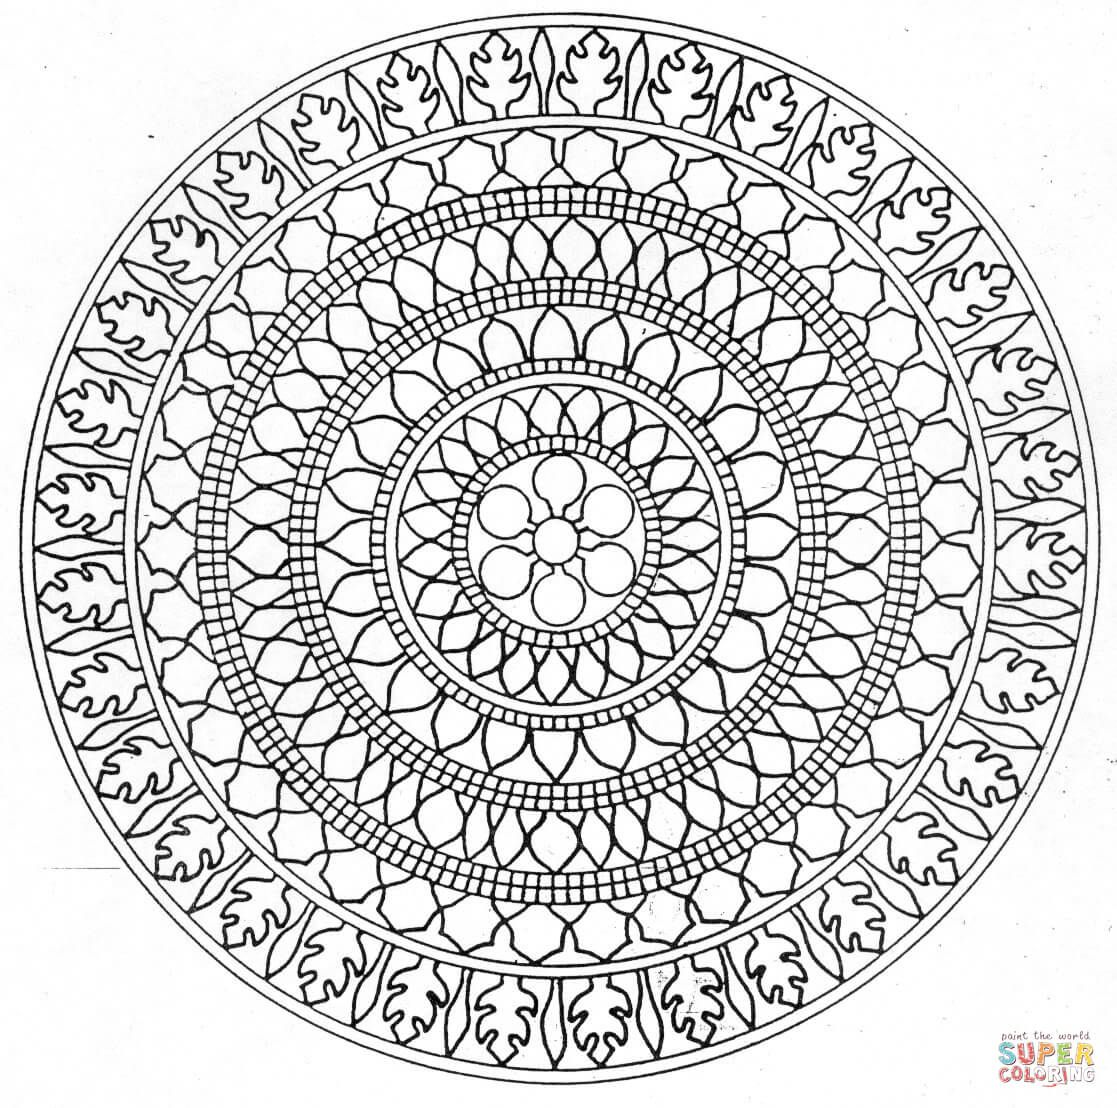 29 Printable Mandala Abstract Colouring Pages For Meditation Stress Relief Abstract Coloring Pages Mandala Coloring Pages Mandala Coloring Books